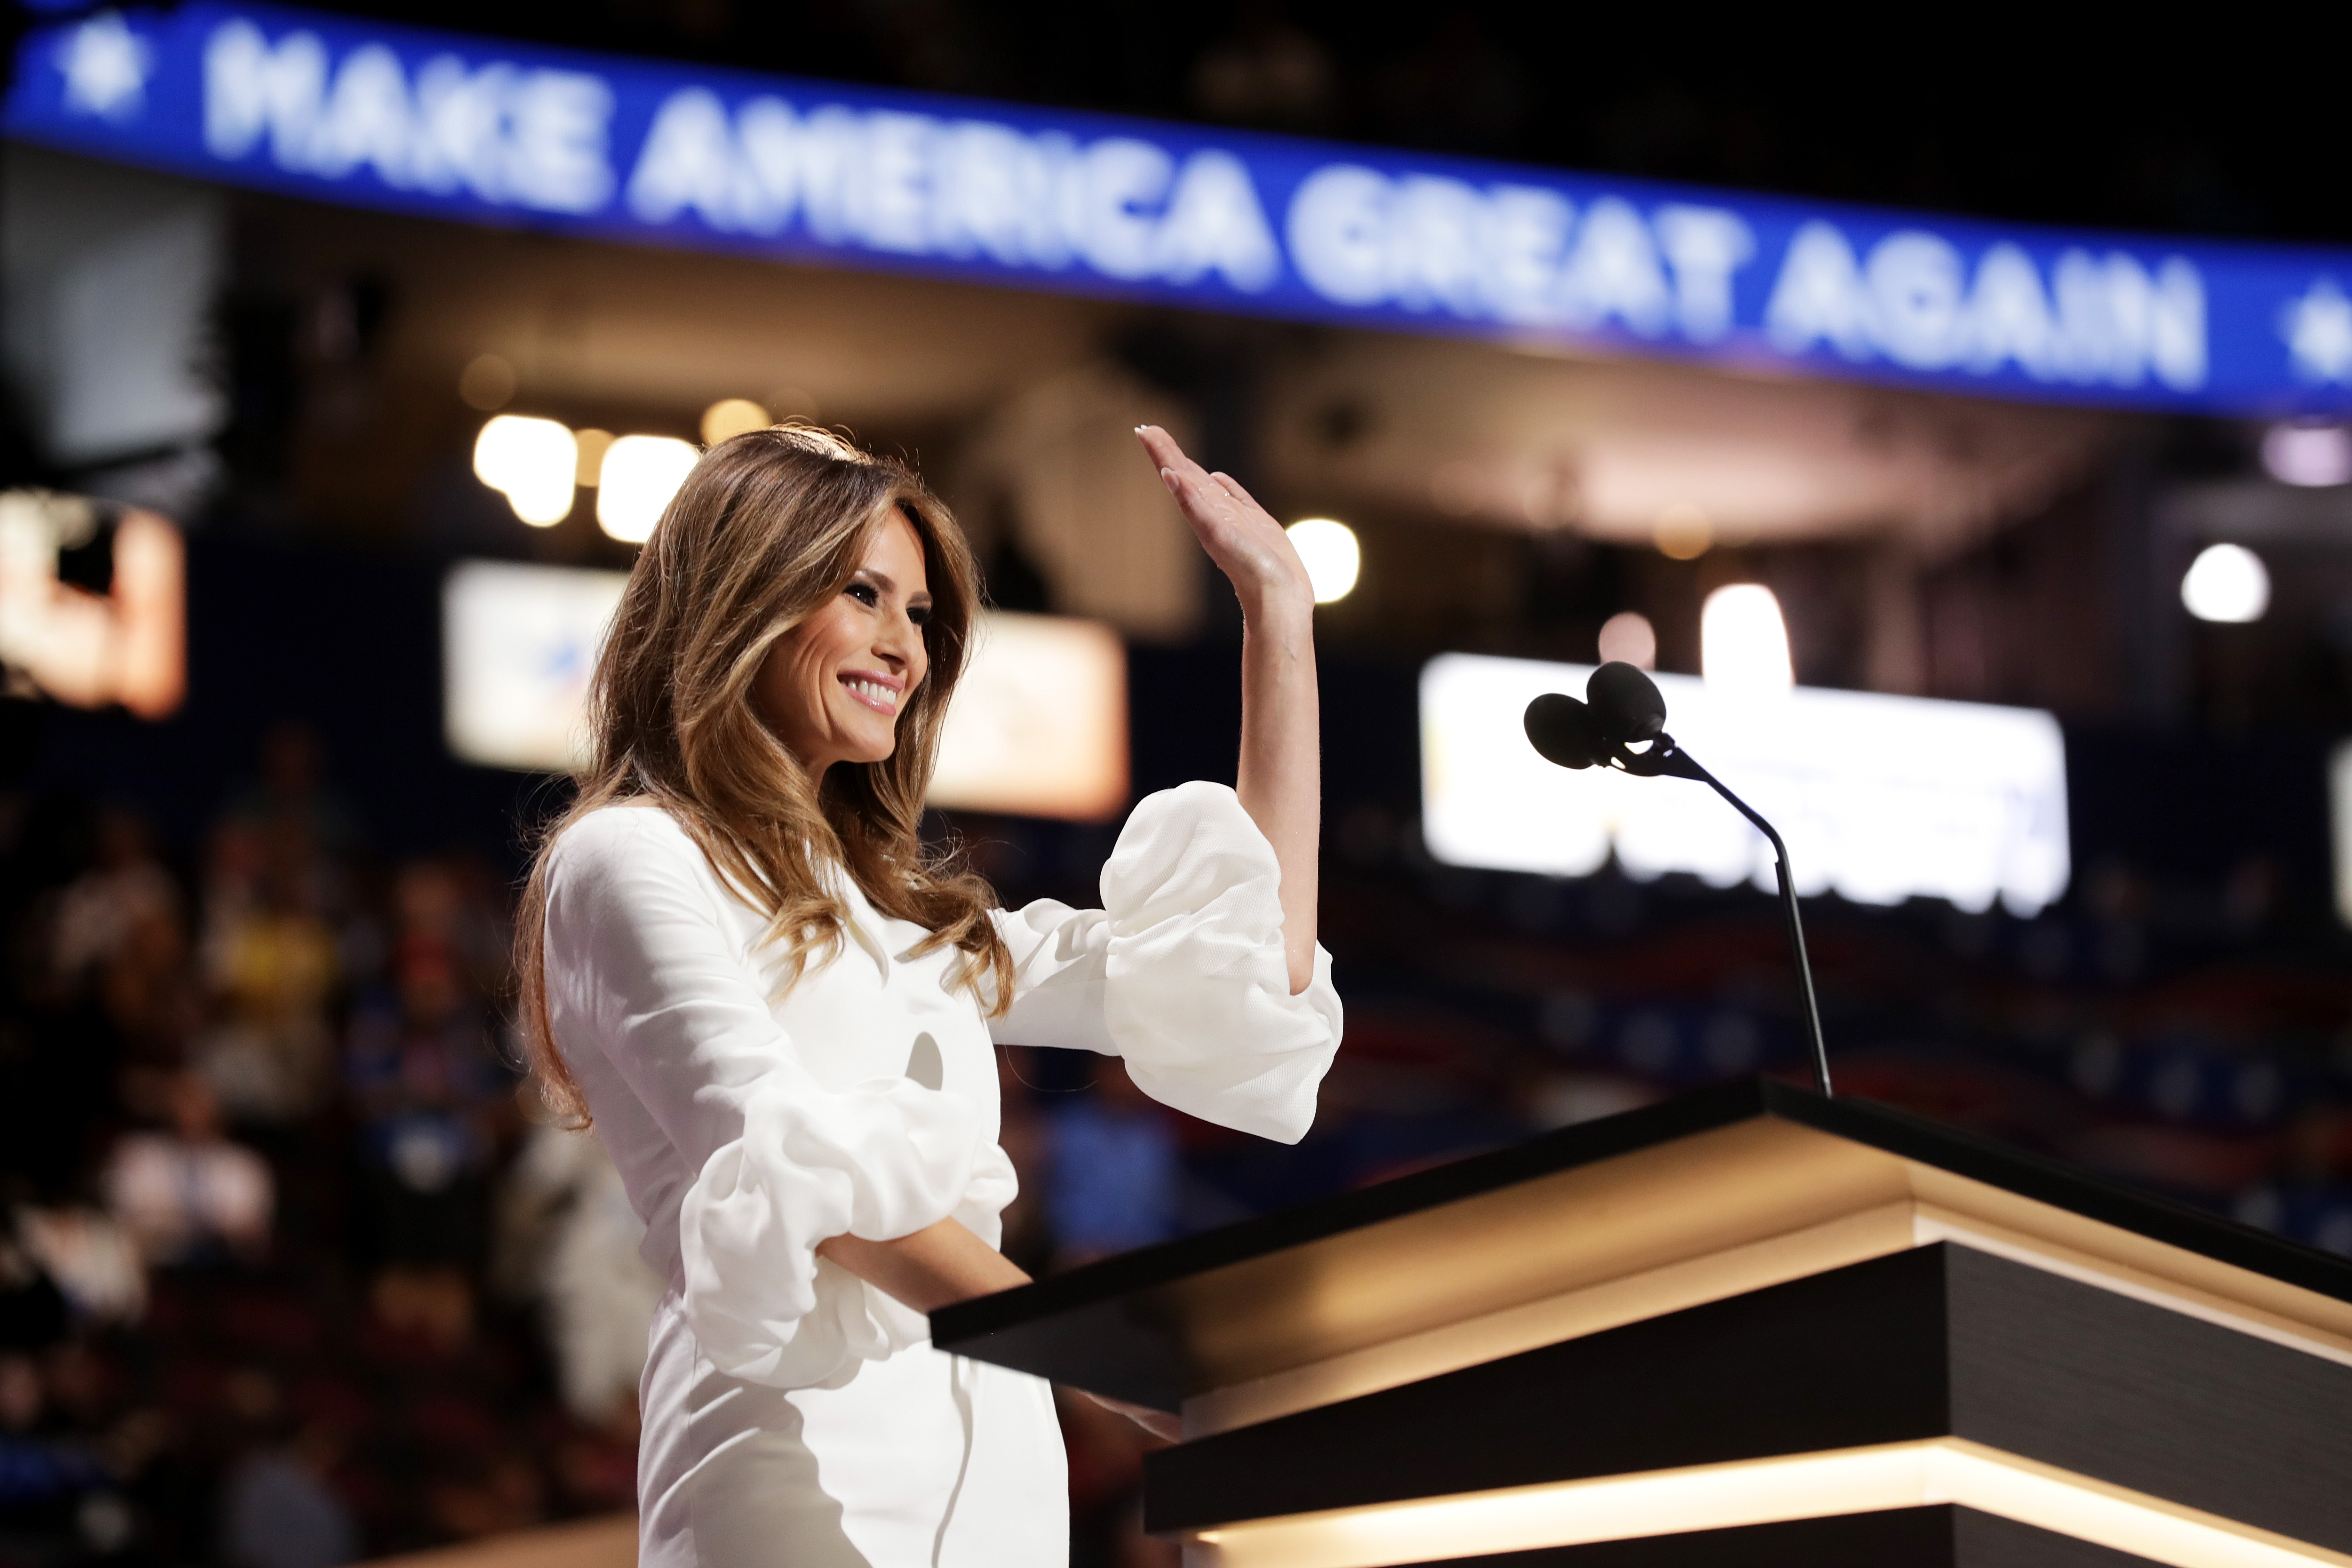 Melania Trump, wife of Presumptive Republican presidential nominee Donald Trump, waves to the crowd after delivering a speech on the first day of the Republican National Convention on July 18, 2016 at the Quicken Loans Arena in Cleveland, Ohio.